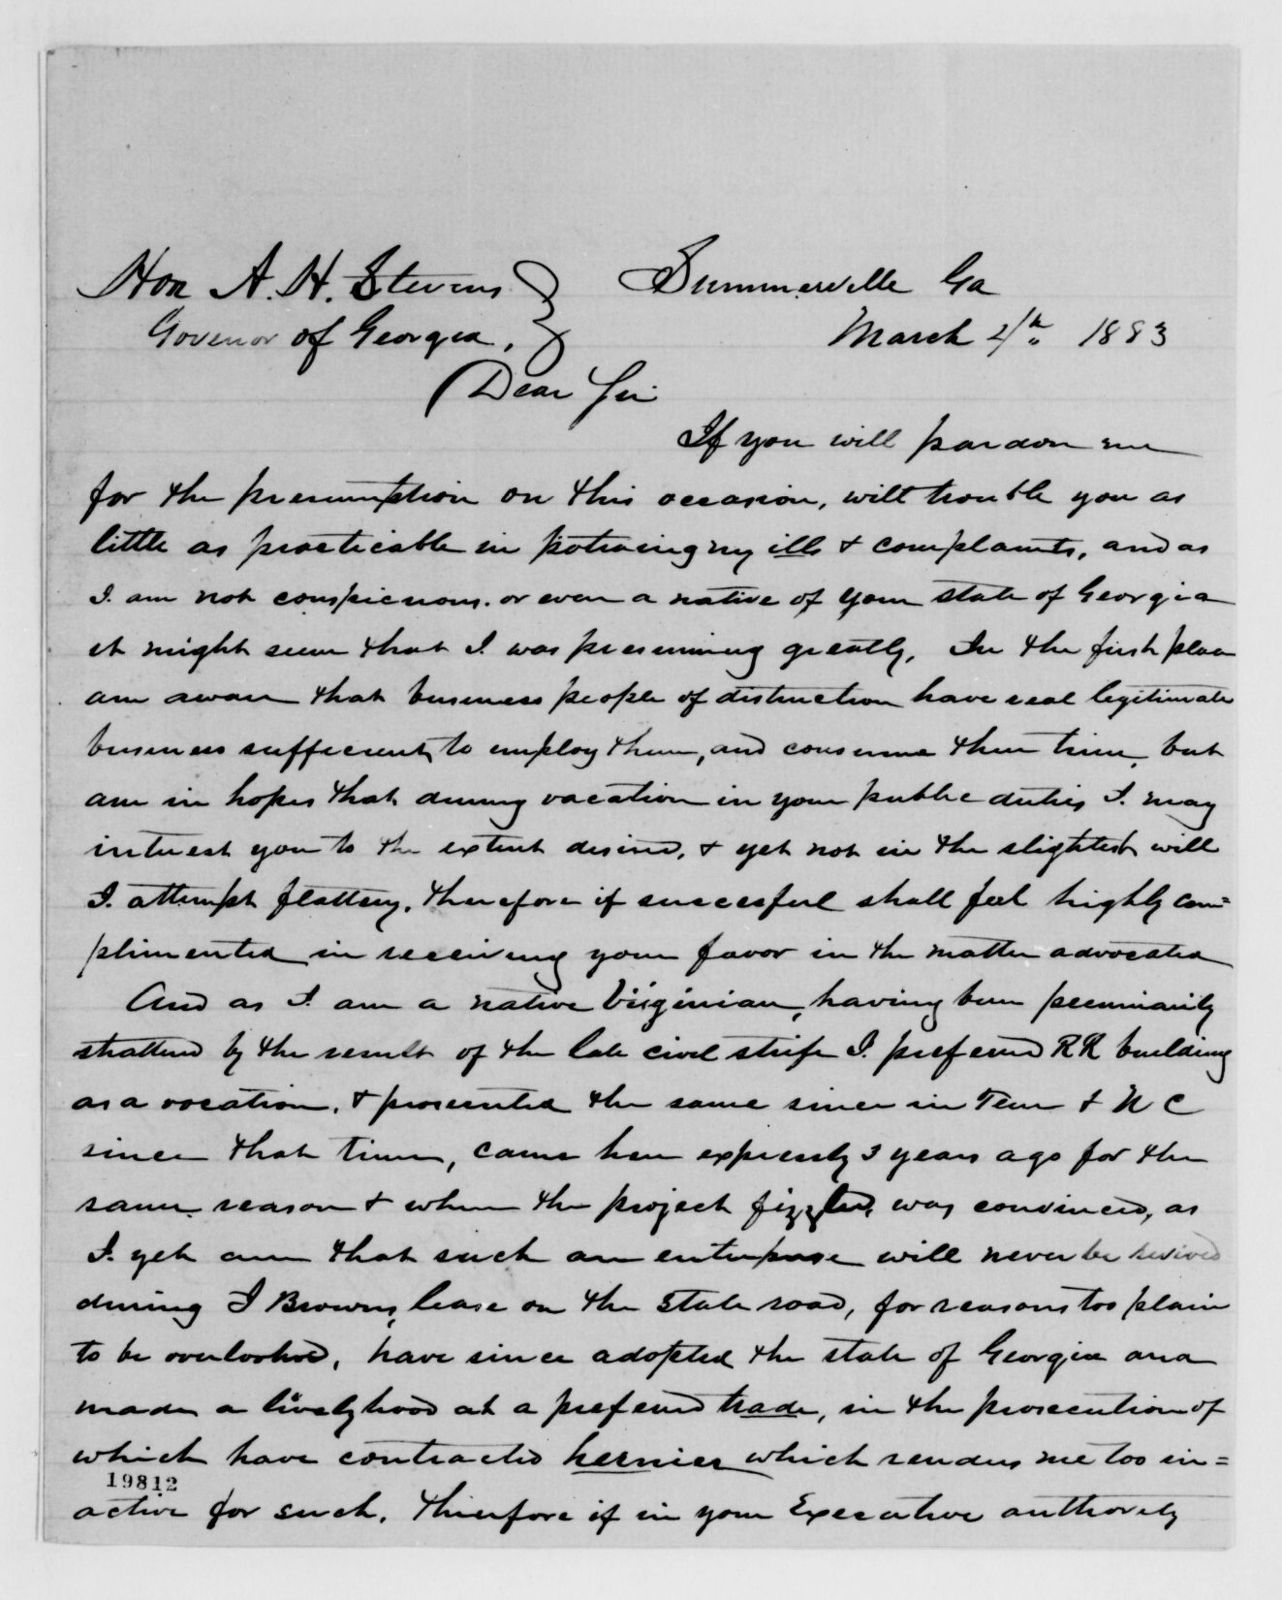 Alexander Hamilton Stephens Papers: General Correspondence, 1784-1886; 1883, Feb. 7-1886, Jan. 12